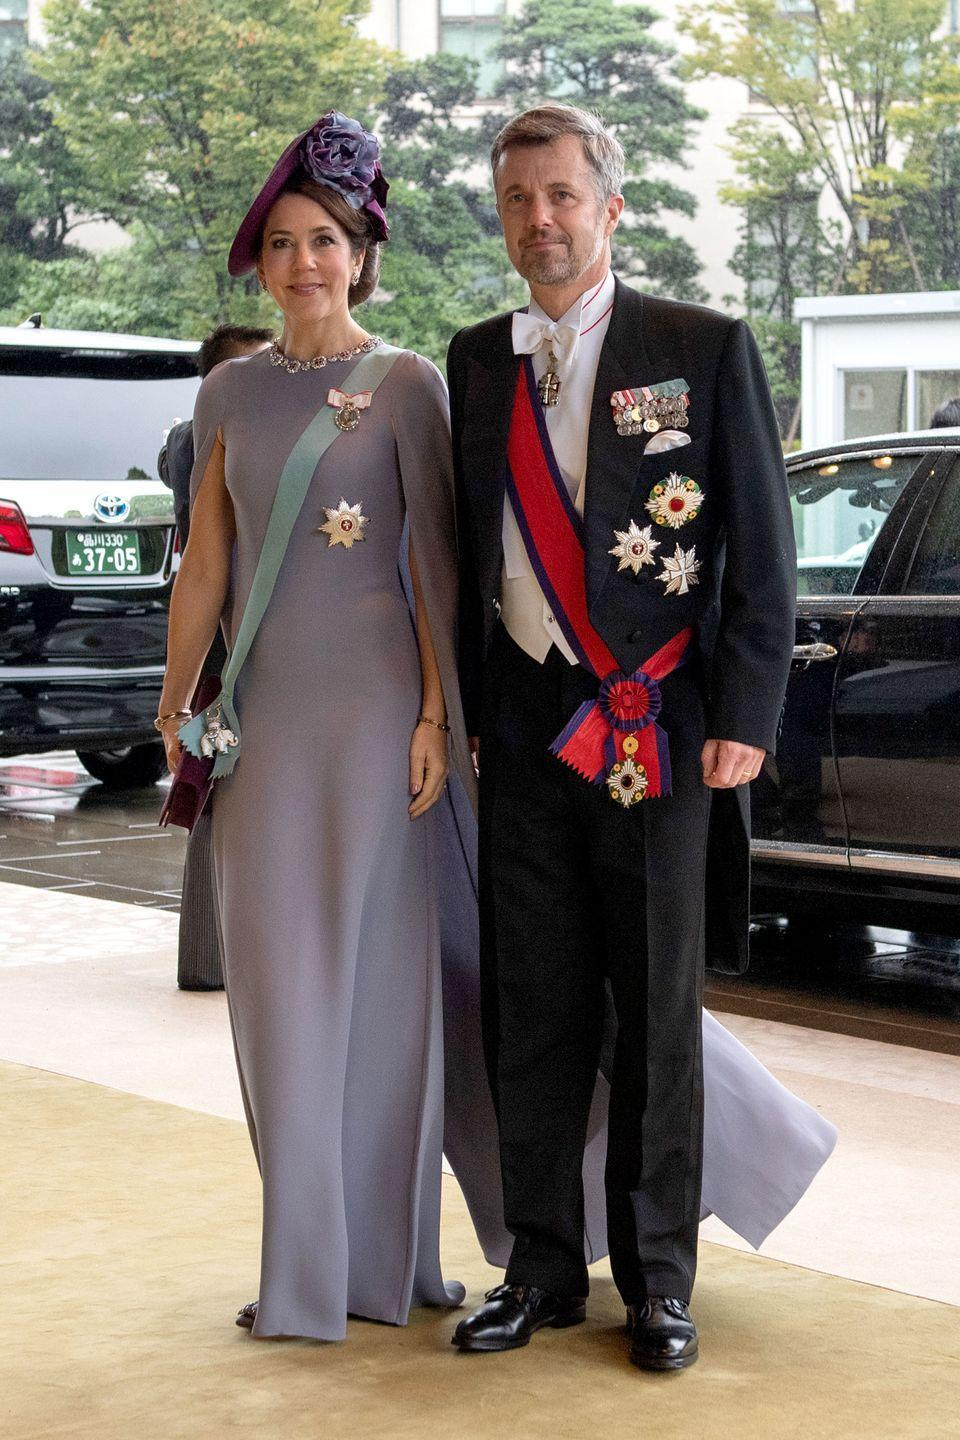 """<p>Apparently, cape dresses were a trend at Emperor Naruhito's enthronement ceremony. <a href=""""https://www.townandcountrymag.com/society/tradition/g30447253/princess-mary-fashion-style/"""" rel=""""nofollow noopener"""" target=""""_blank"""" data-ylk=""""slk:Crown Princess Mary"""" class=""""link rapid-noclick-resp"""">Crown Princess Mary</a> sported her cape gown in a lilac shade. Mary was not afraid to accessorize, as she paired the look with a bold necklace and a striking purple, floral hat. <br></p>"""